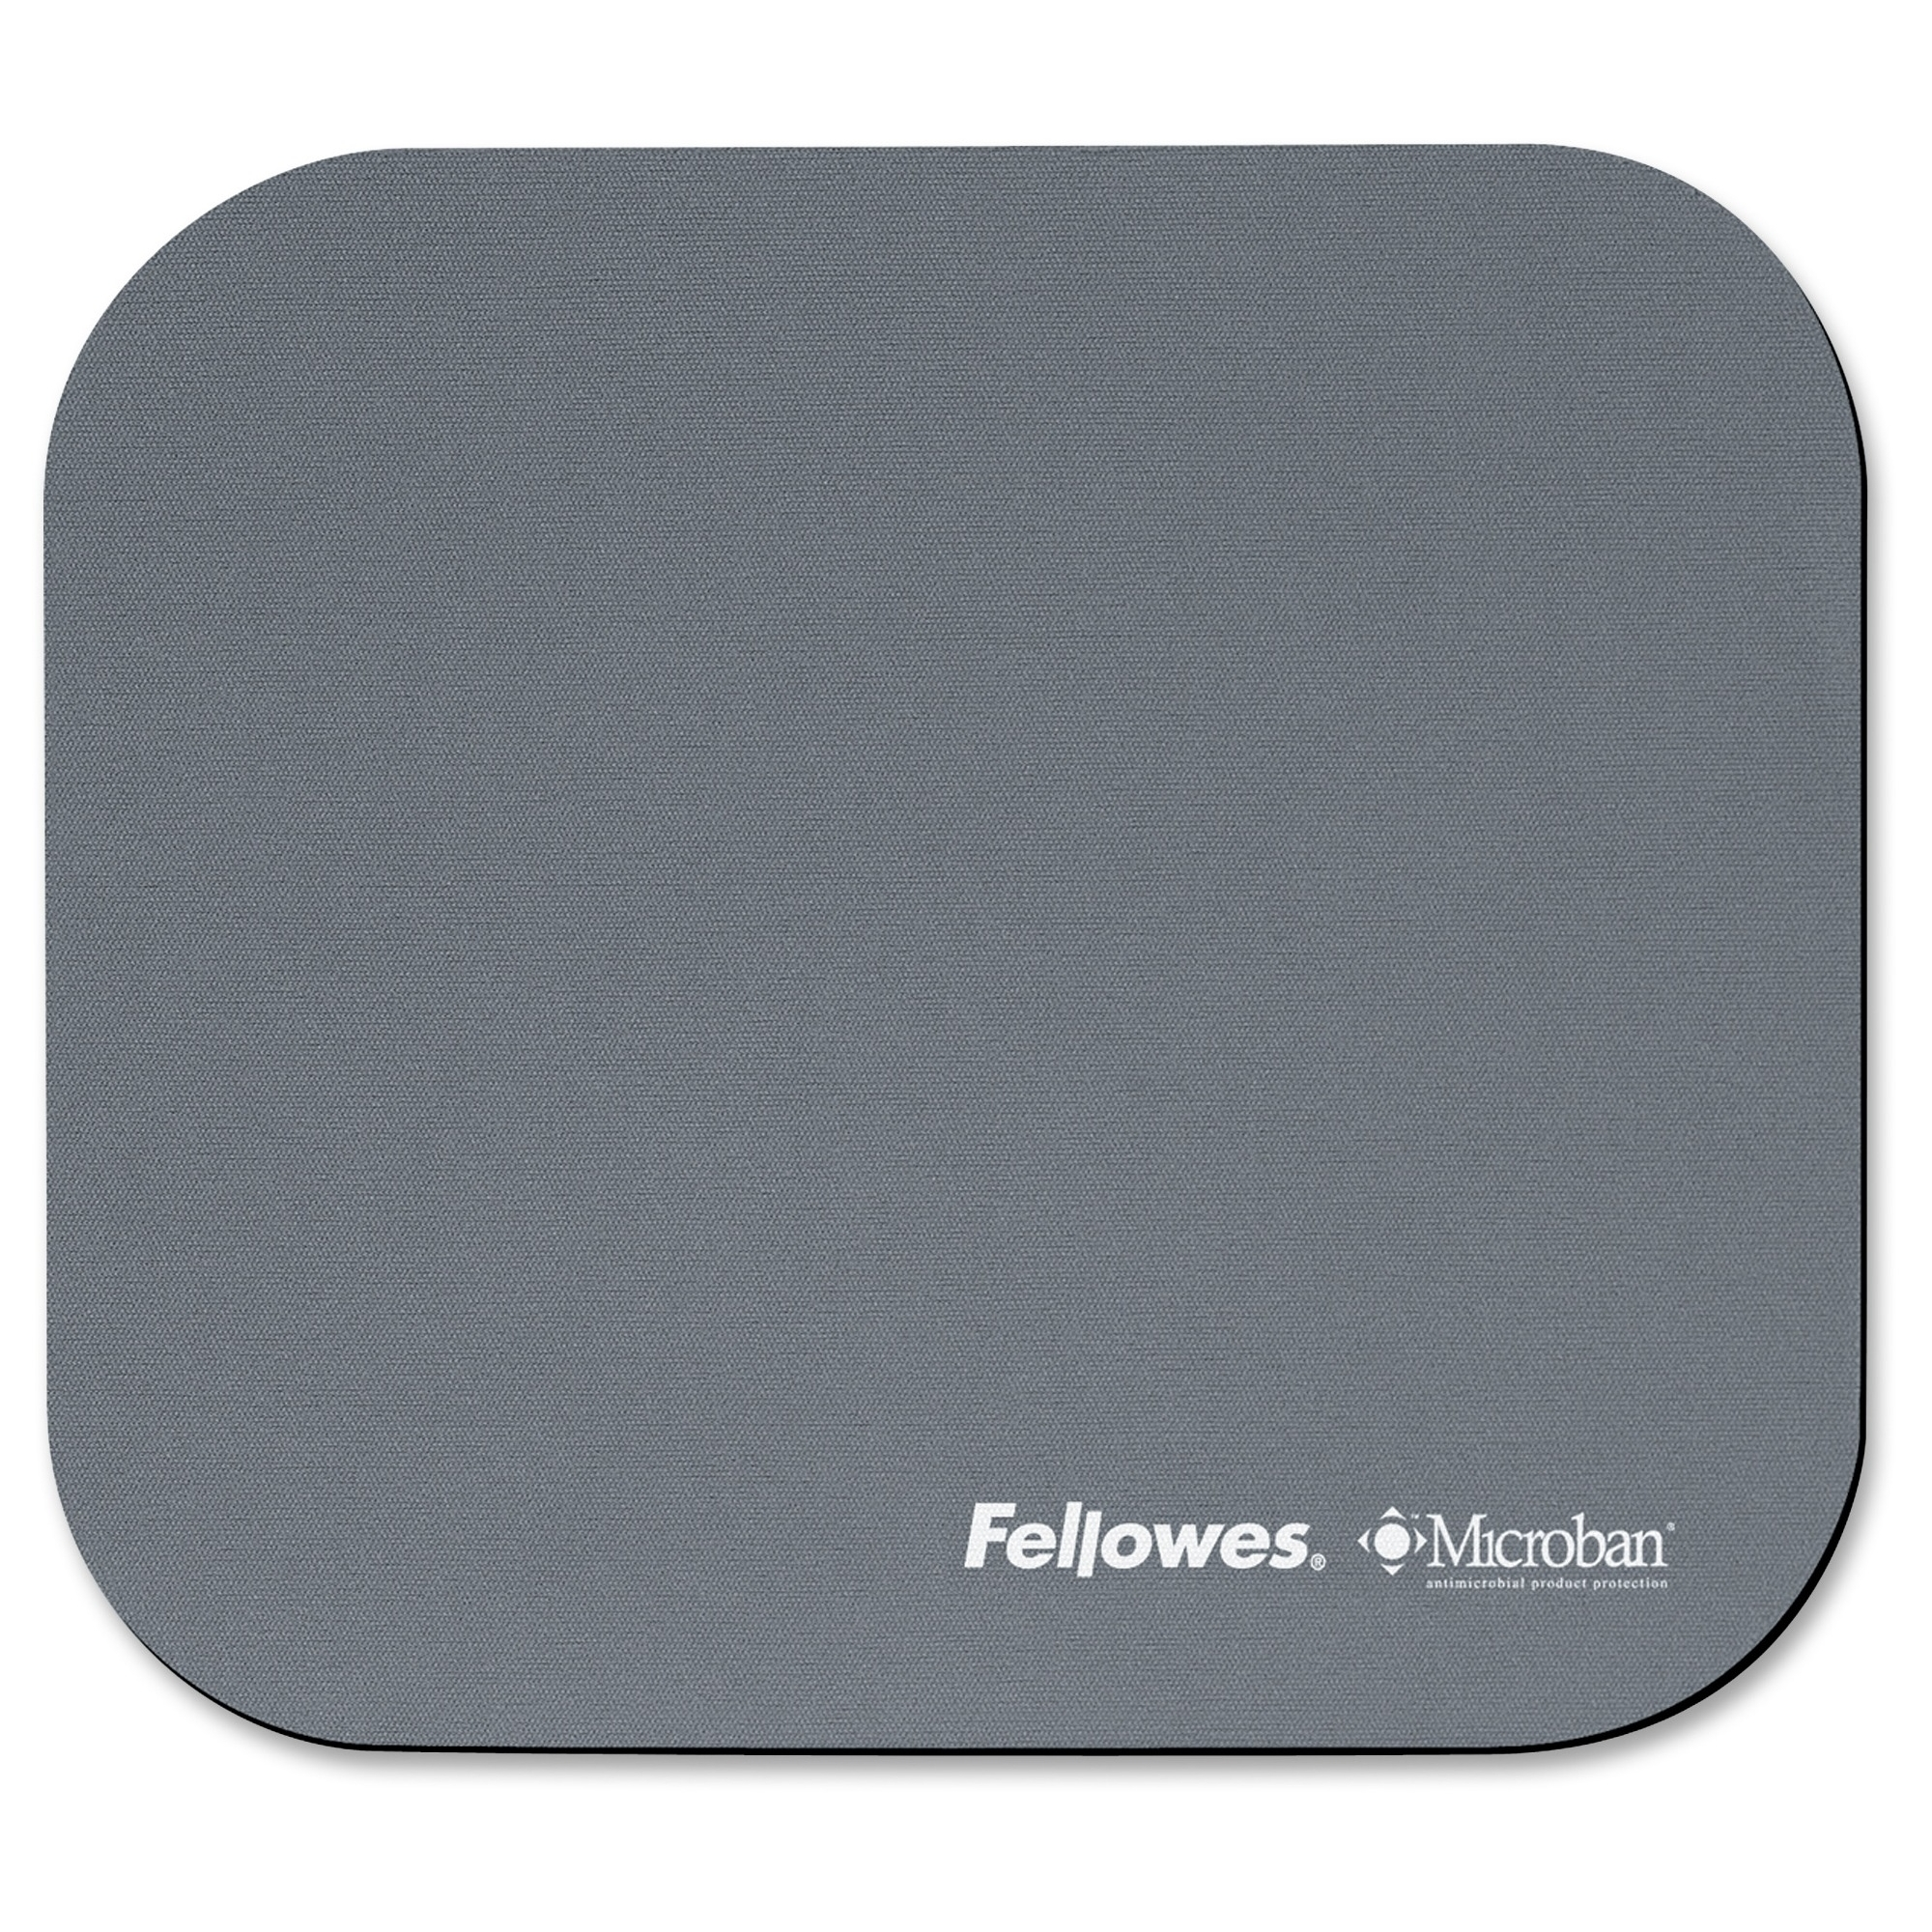 Microban Mouse Pad - 0.1 inch x 9 inch x 8 inch Dimension - Graphite - Polyester Rubber - Wear Resistant Tear Resistant Scratch Resistant